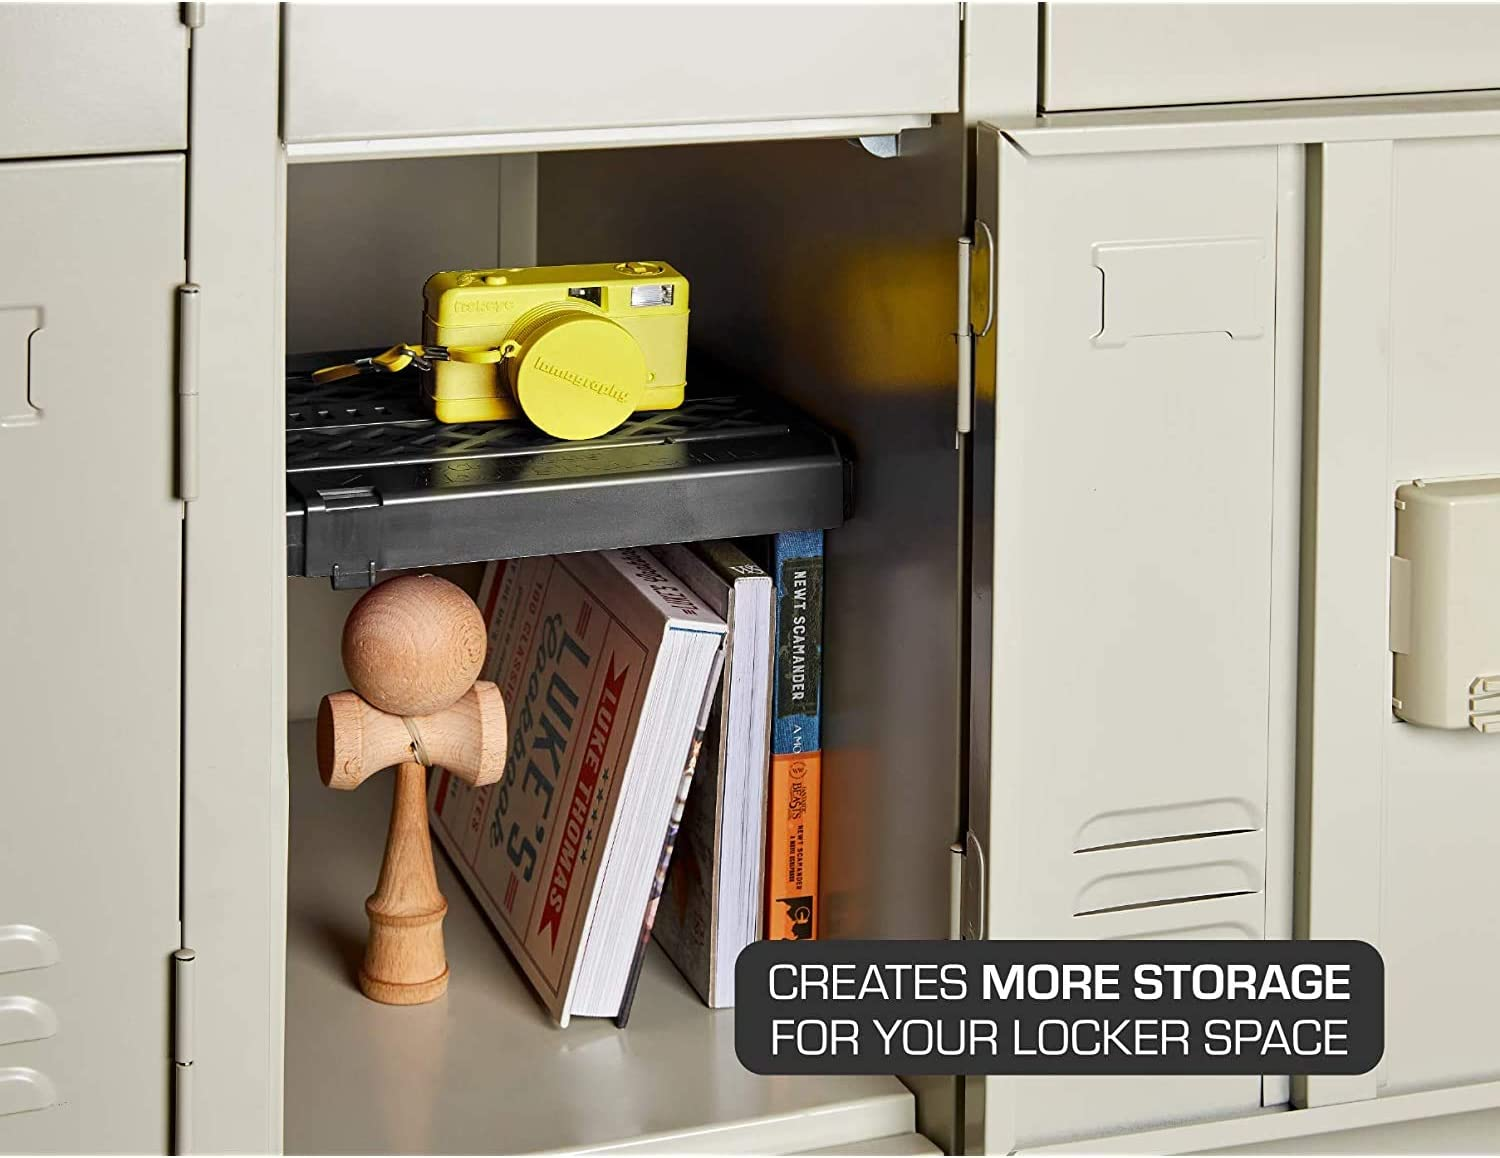 12 Ounces Extends to Fit Your Locker Easy to Use Pink Adjust-A-Shelf Locker Shelf